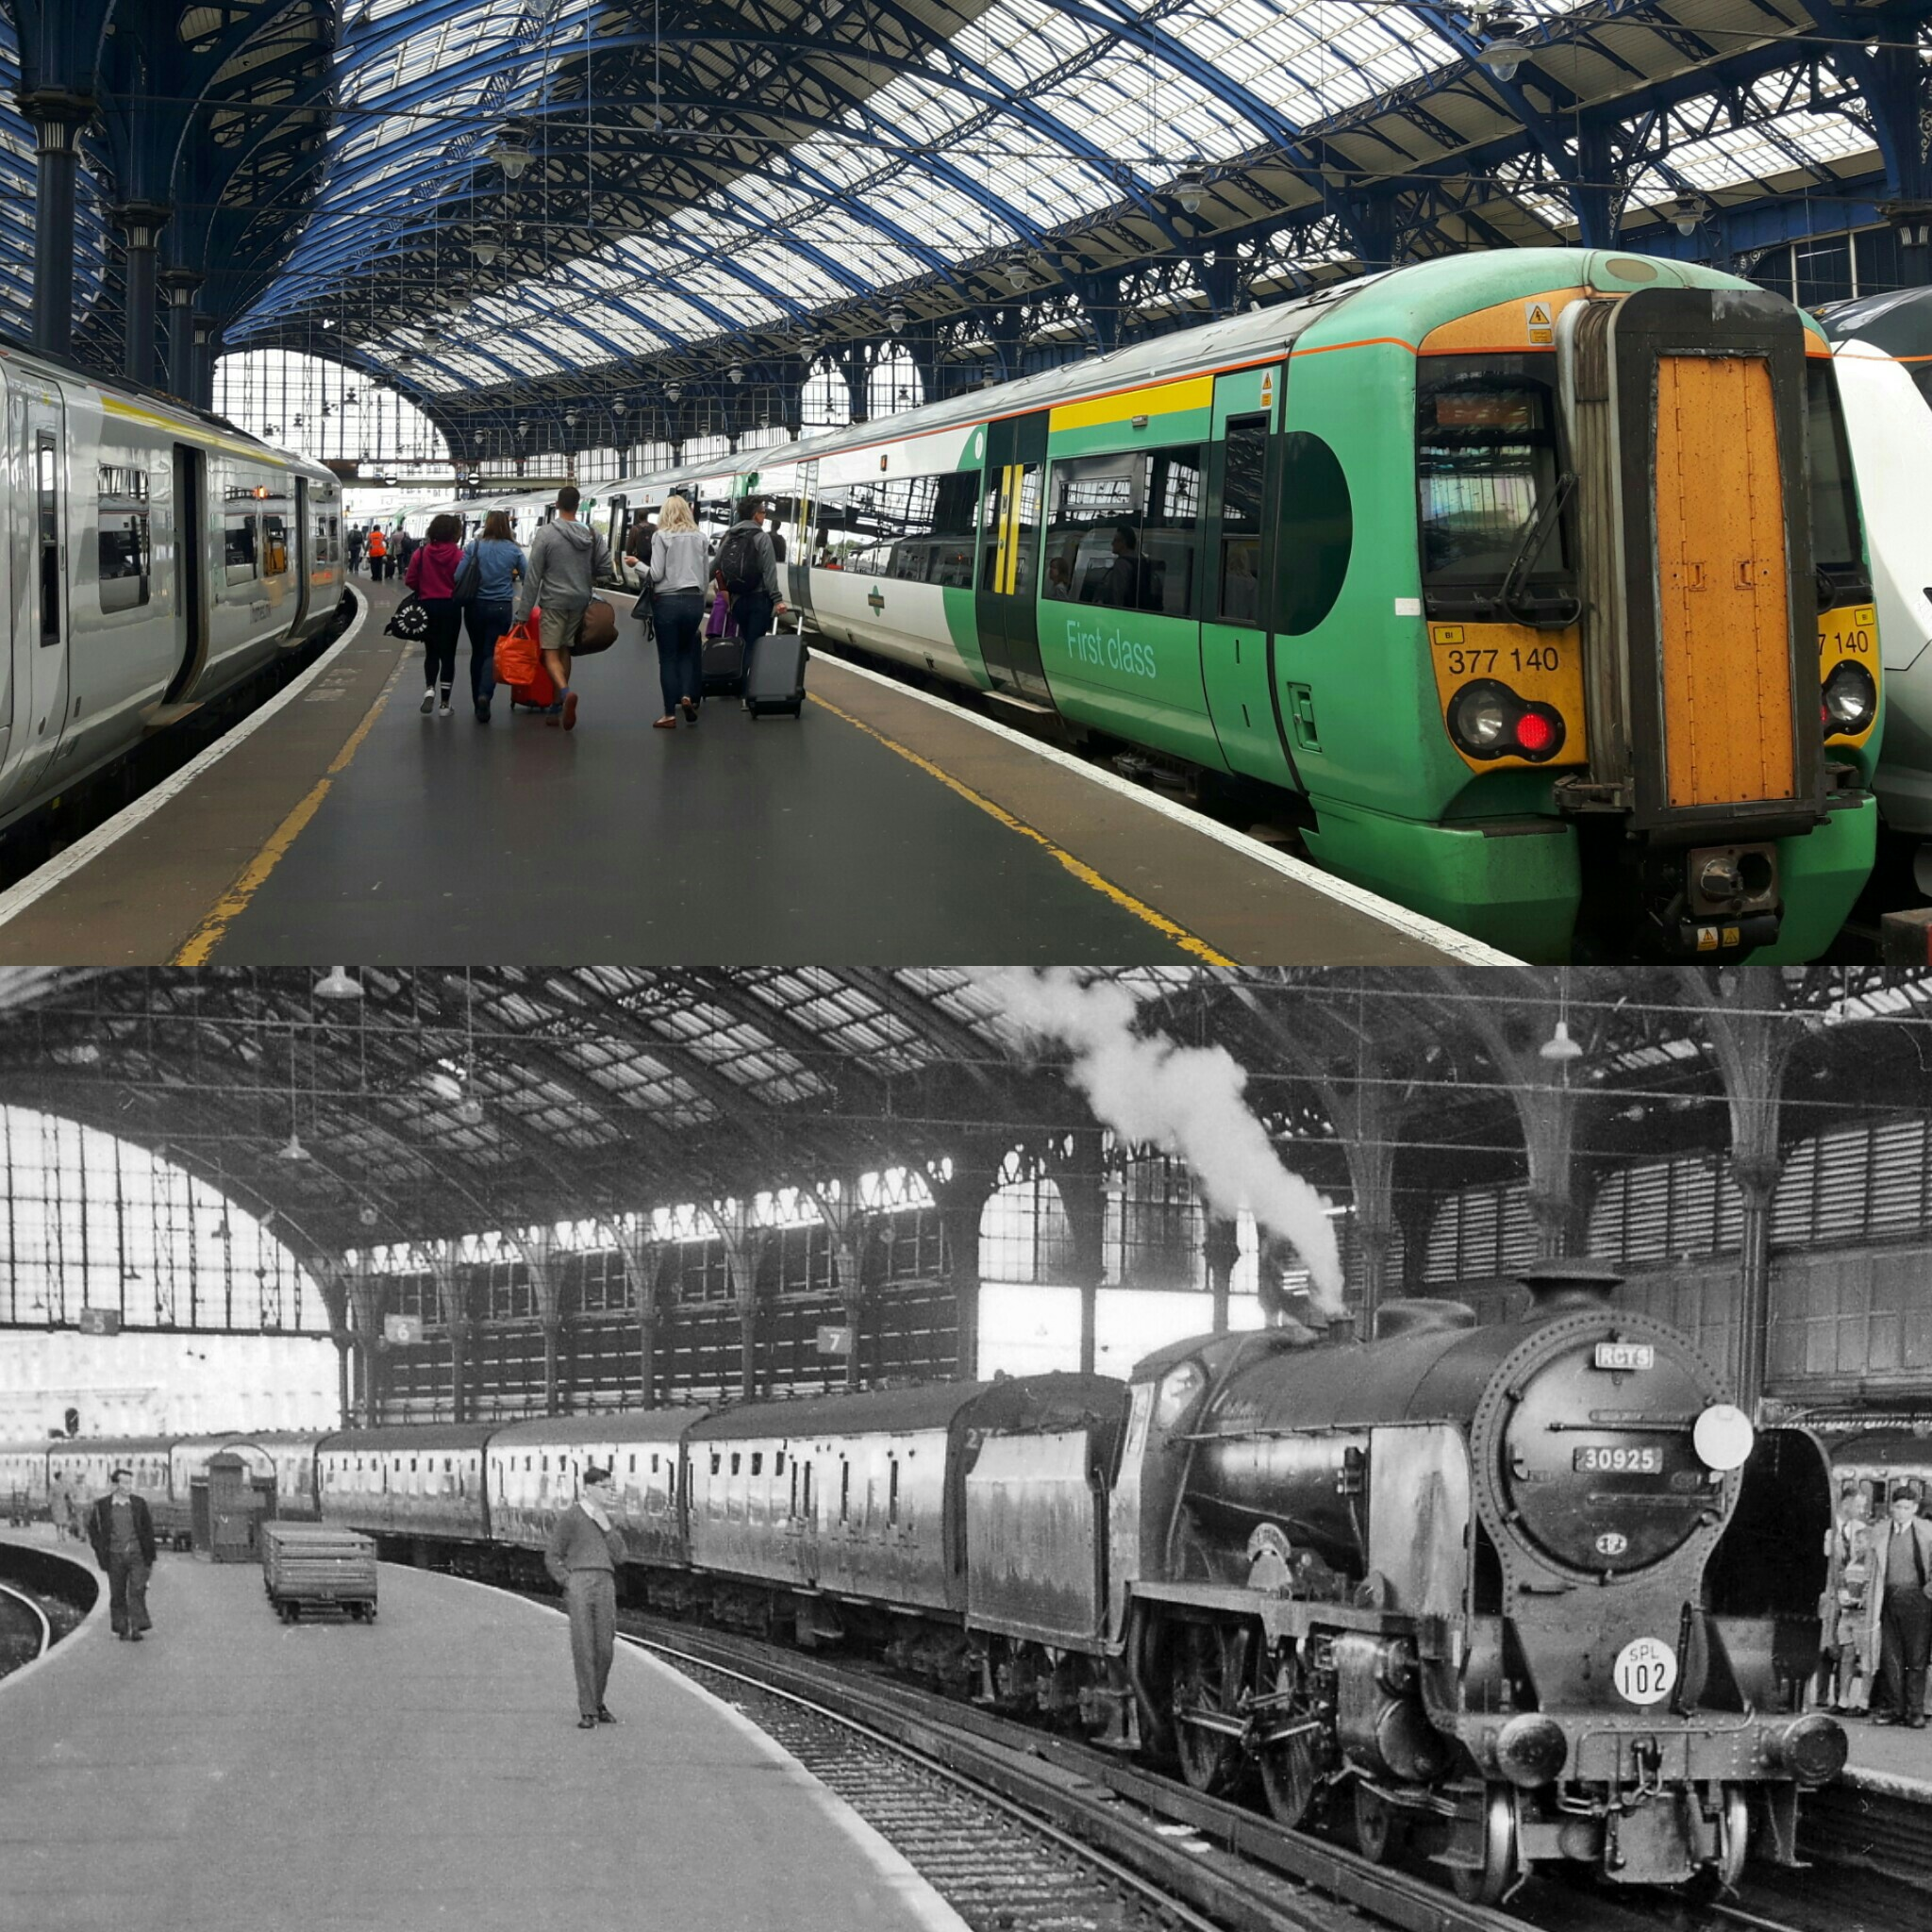 Trains in Brighton Station